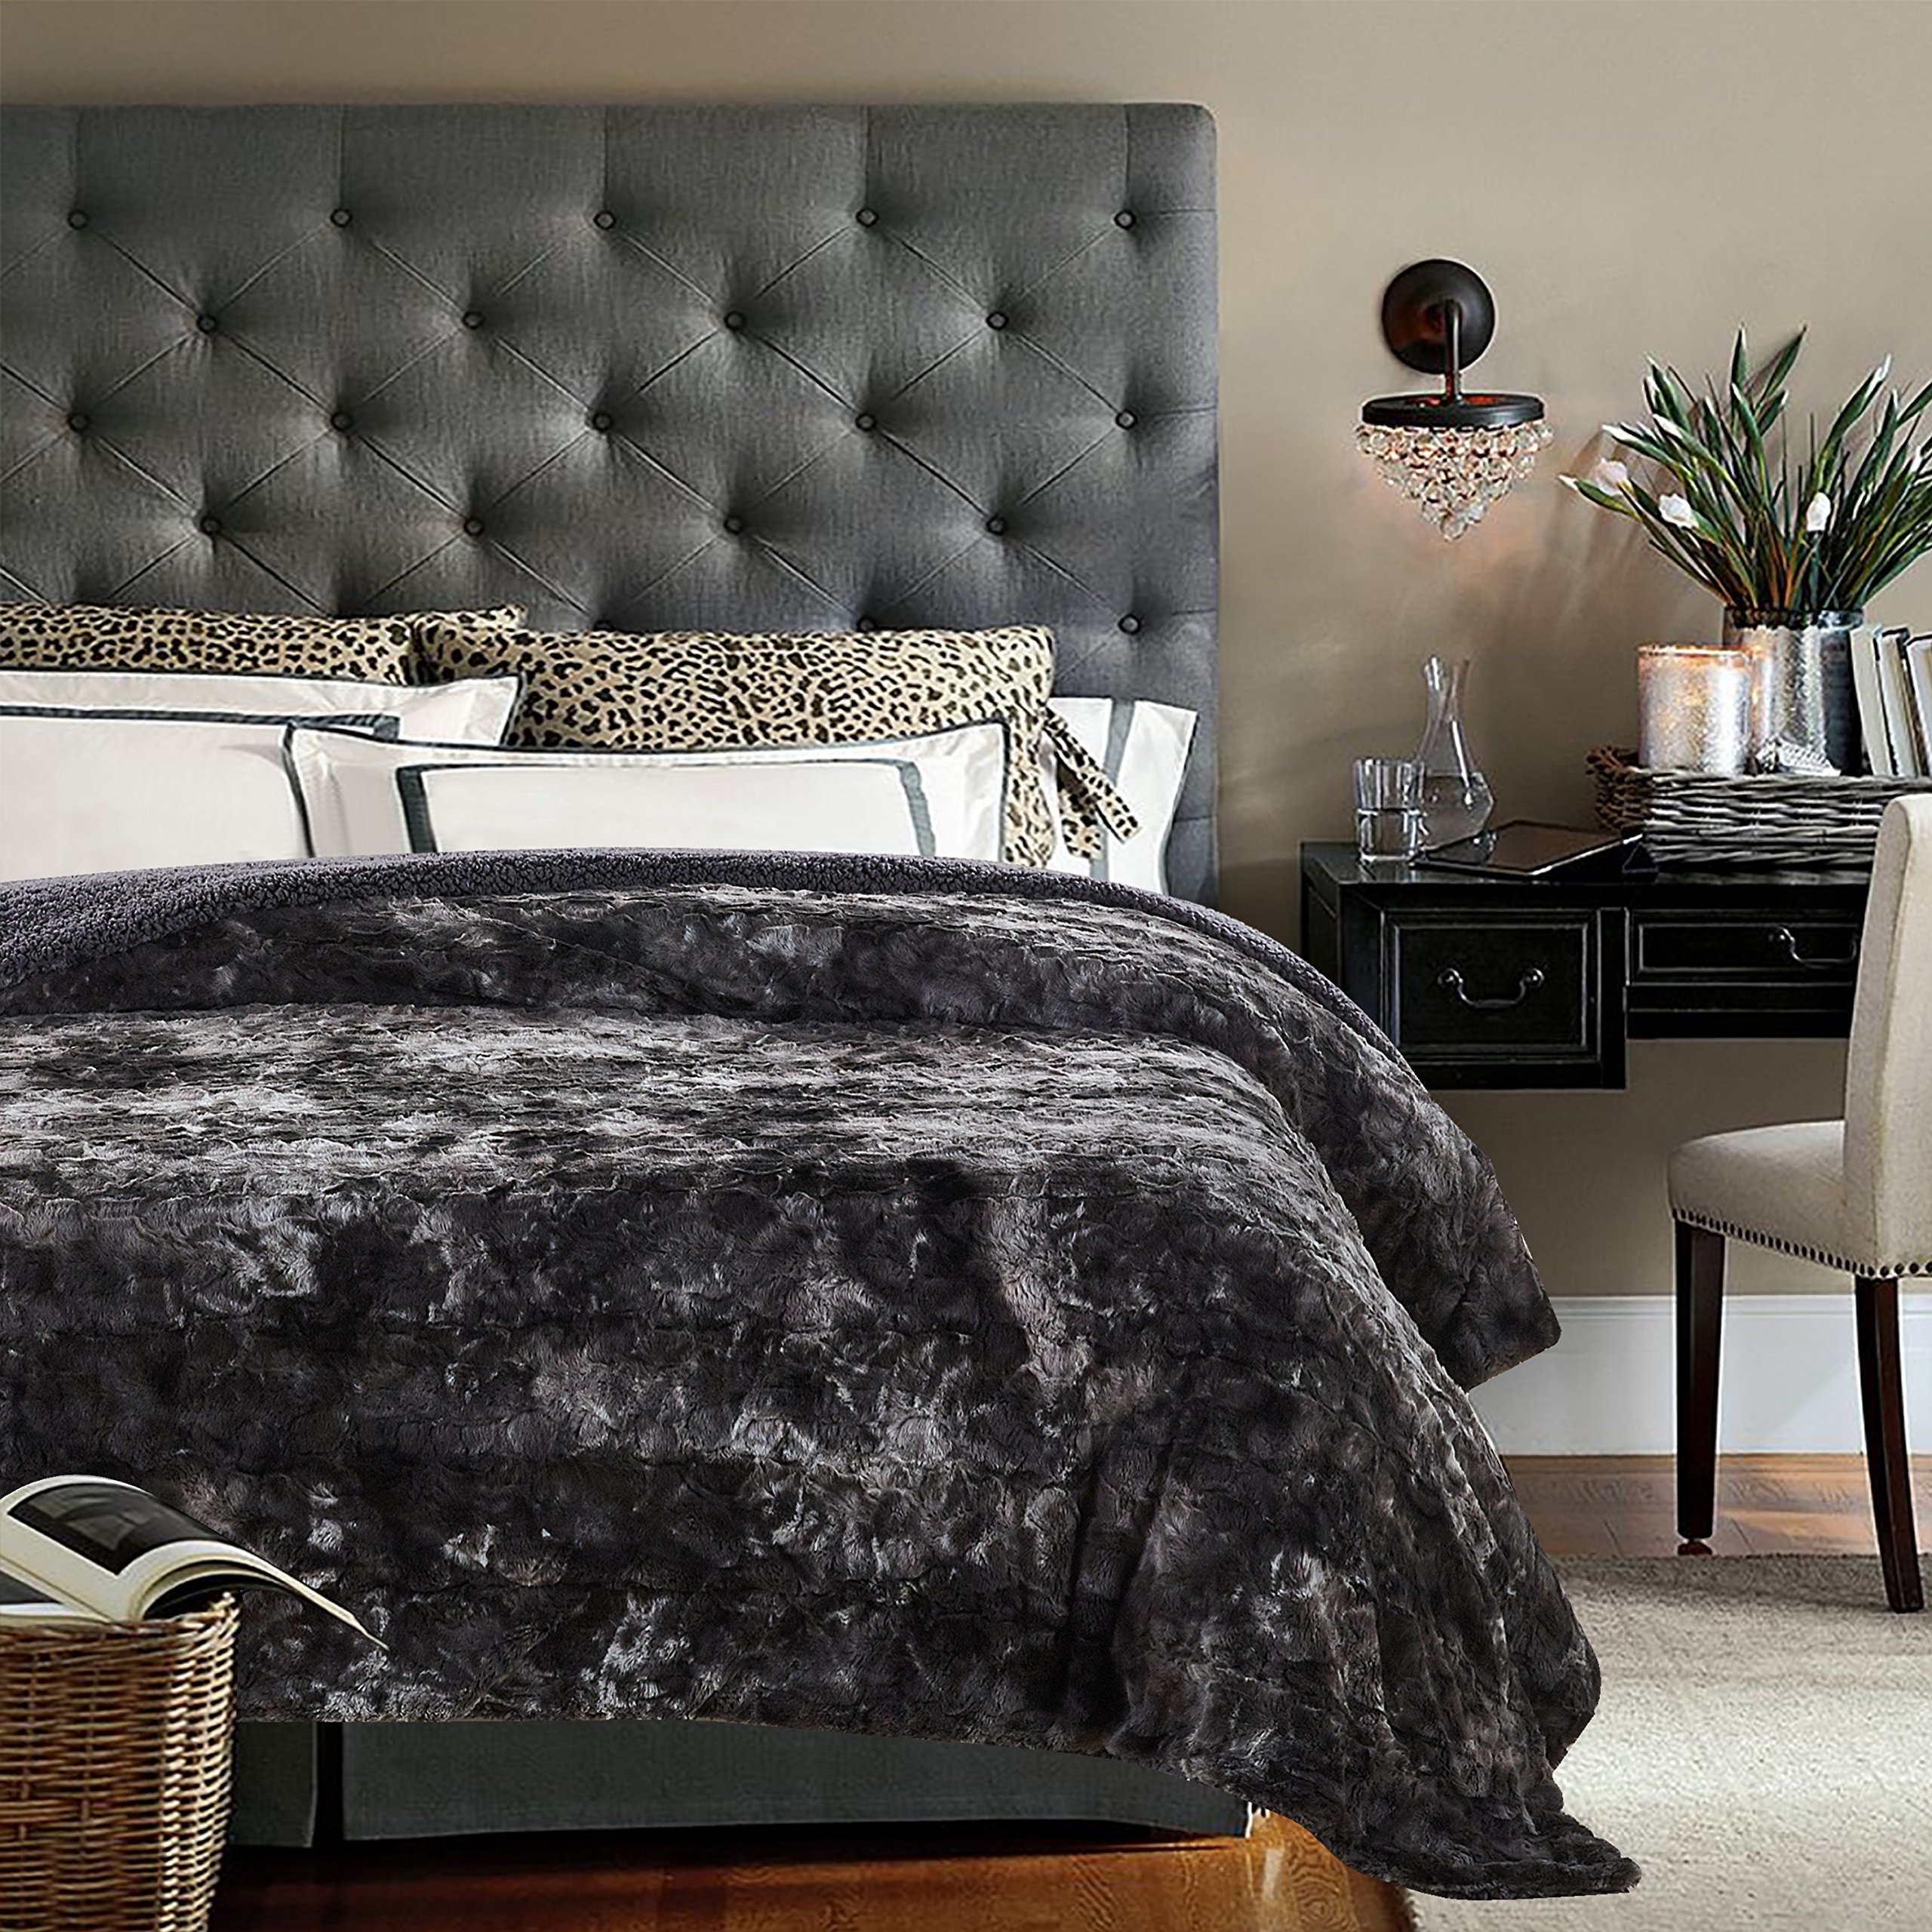 fuzzy eedb macys bed bag a warmth wwe bedroom to more in your add sets king comforter s queen and on with set sheets black